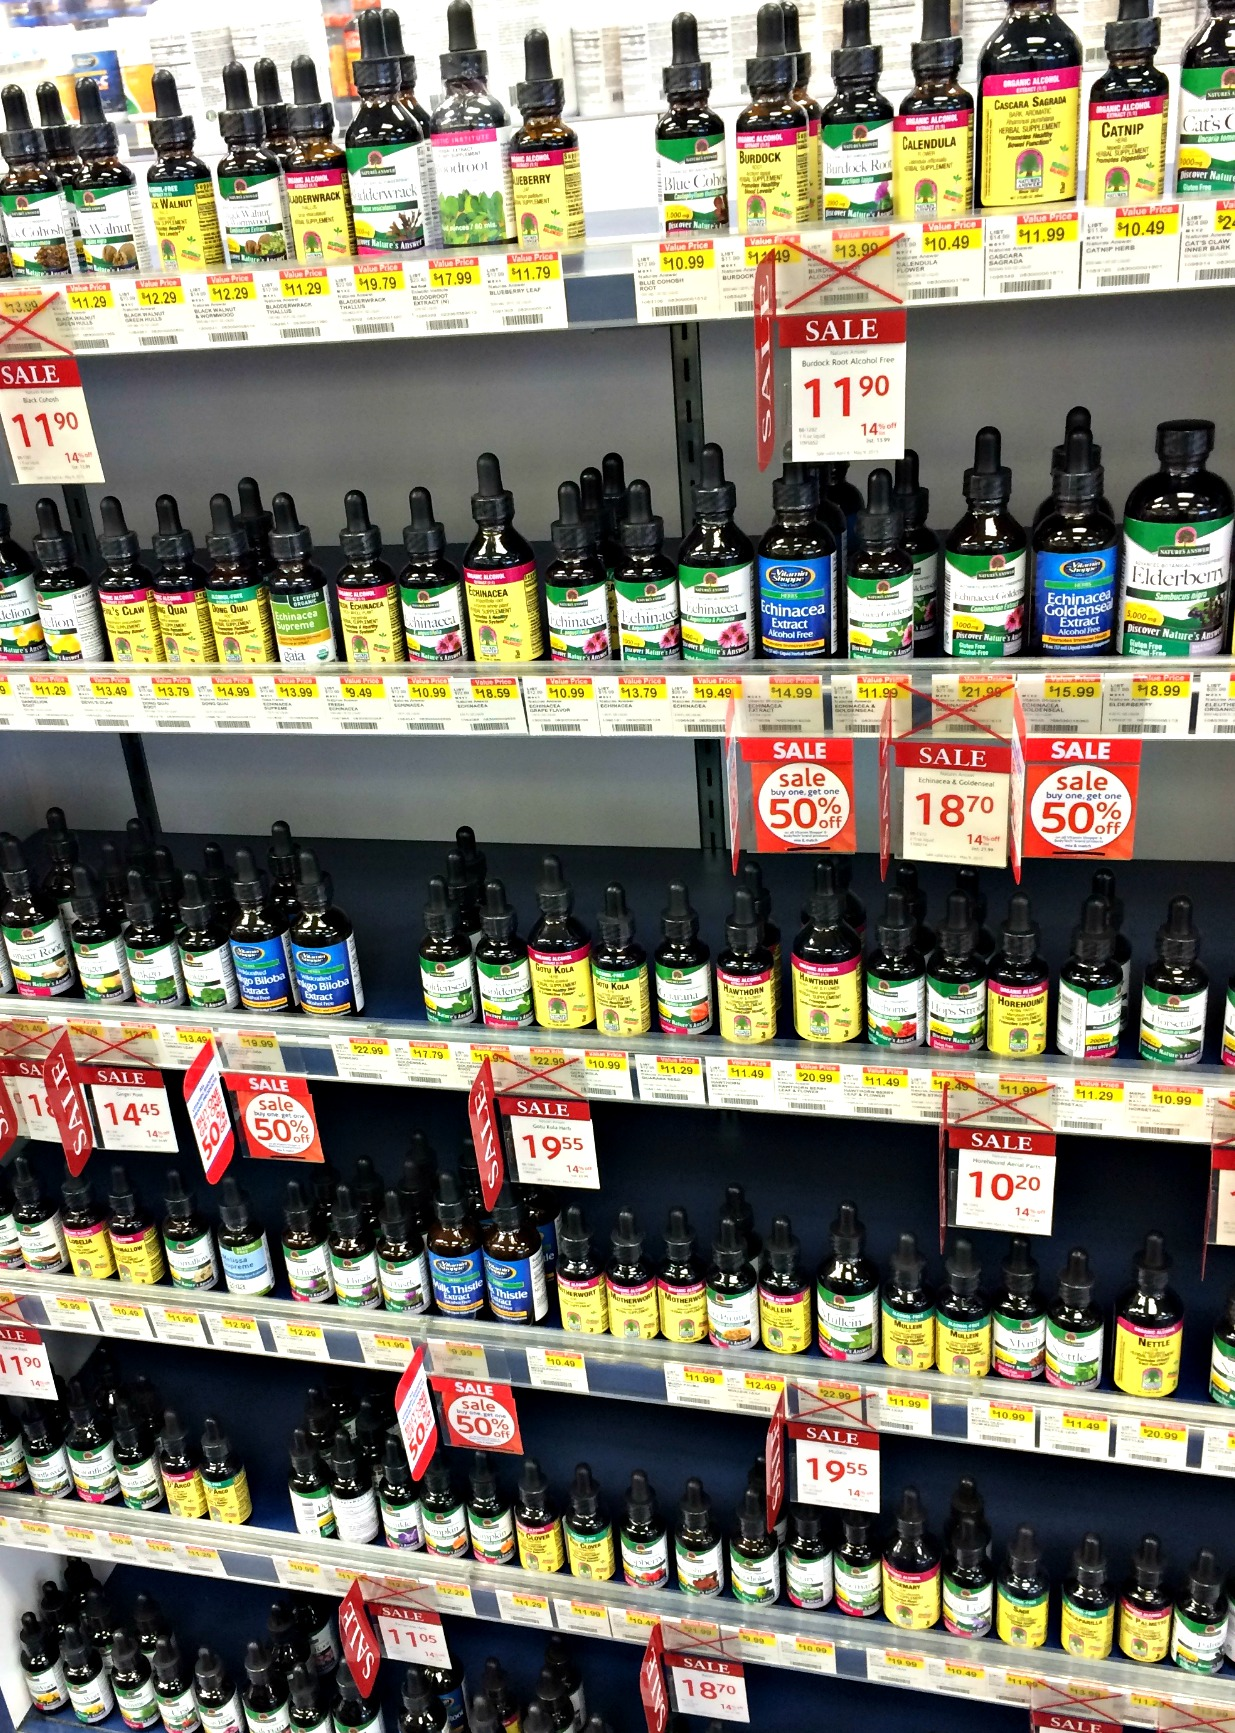 Vitamin shoppe herbs and oils